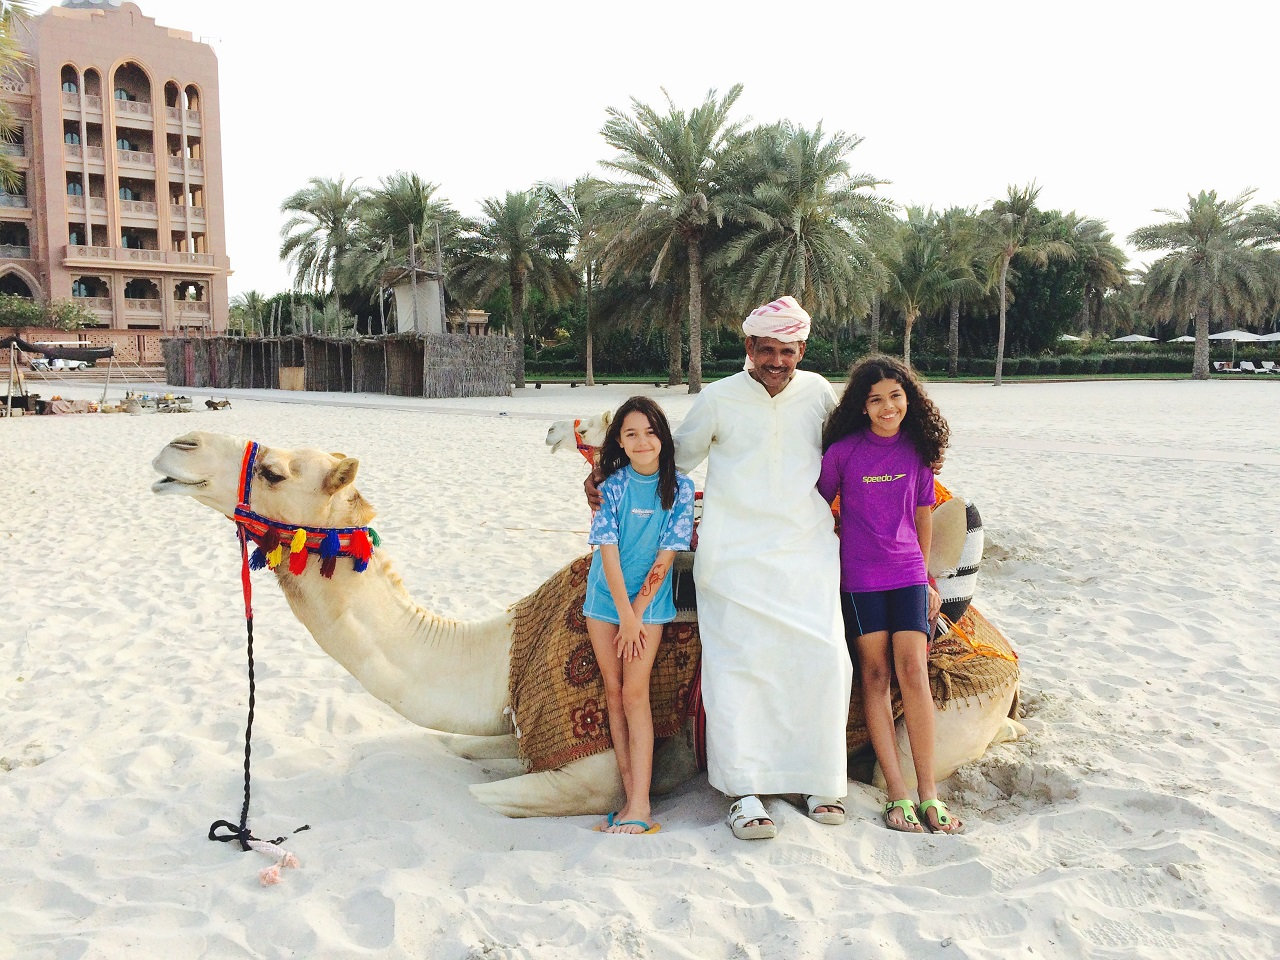 kids and camel